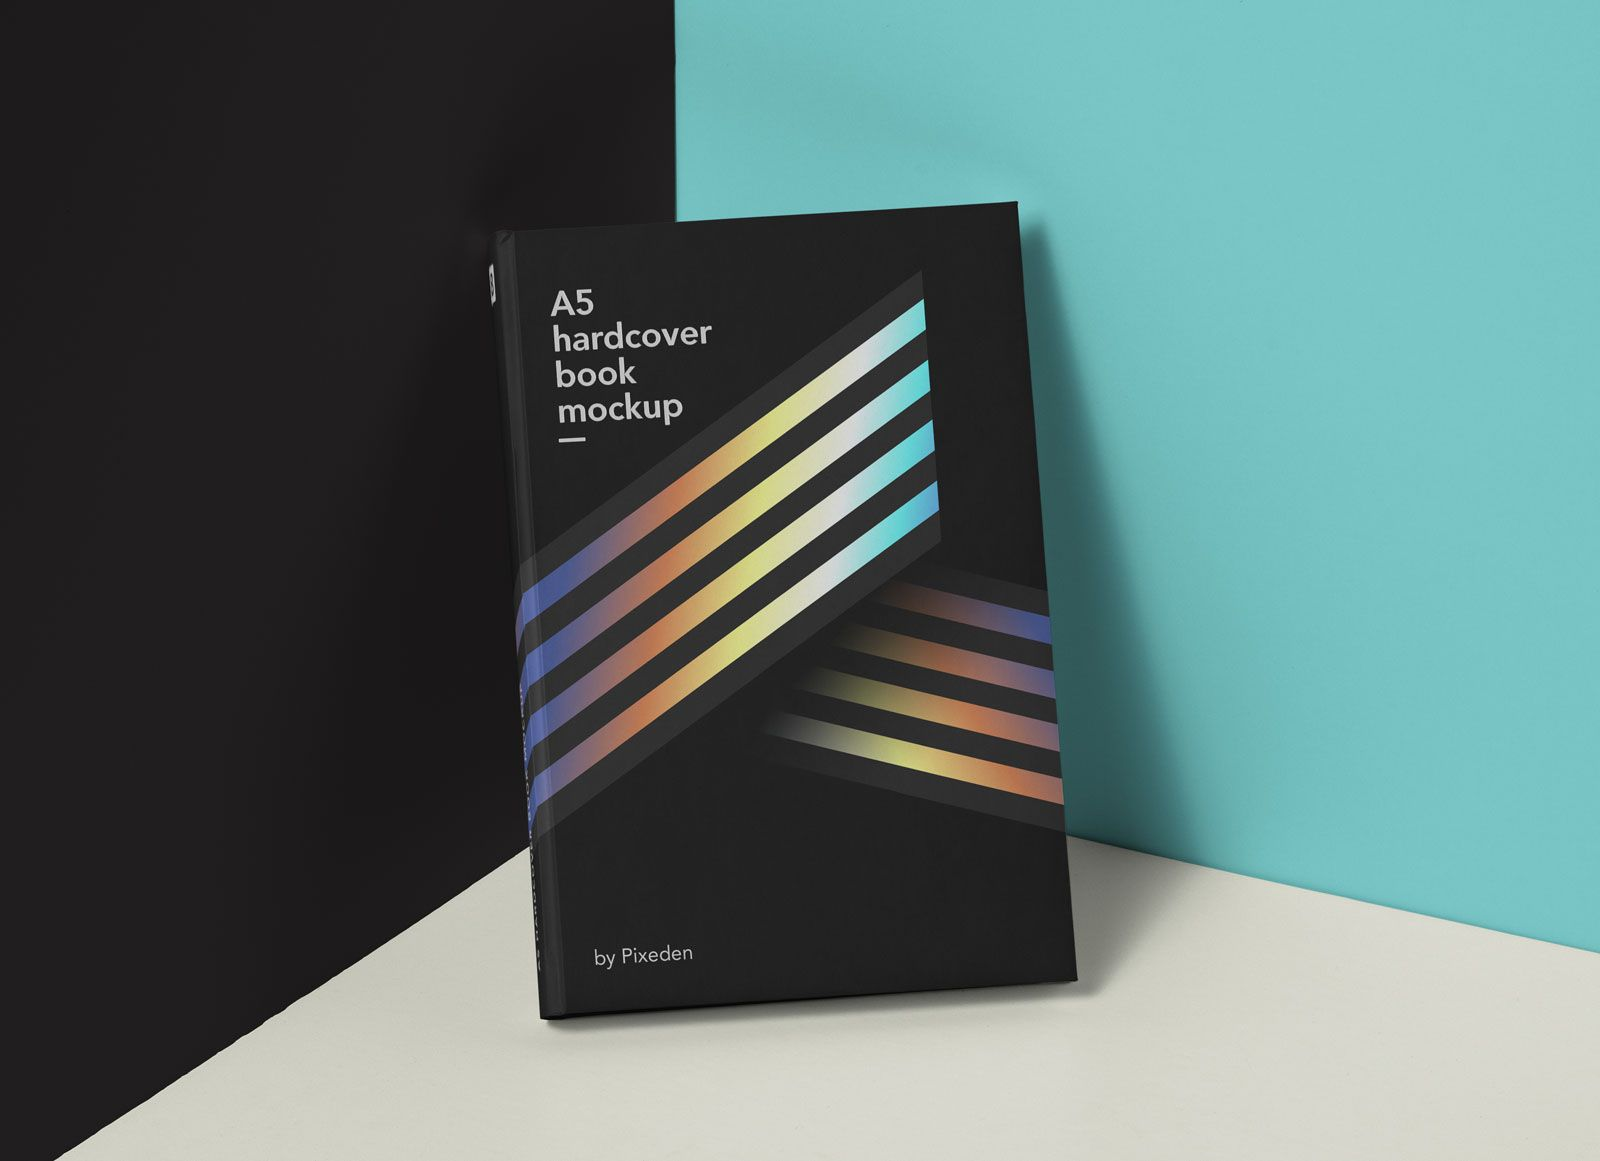 This Is Modern Presentation For A Hardcover Psd Book Mockup To Let You Display Your Designs In Style You Can Change Book Cover Mockup Mockup Stationery Mockup